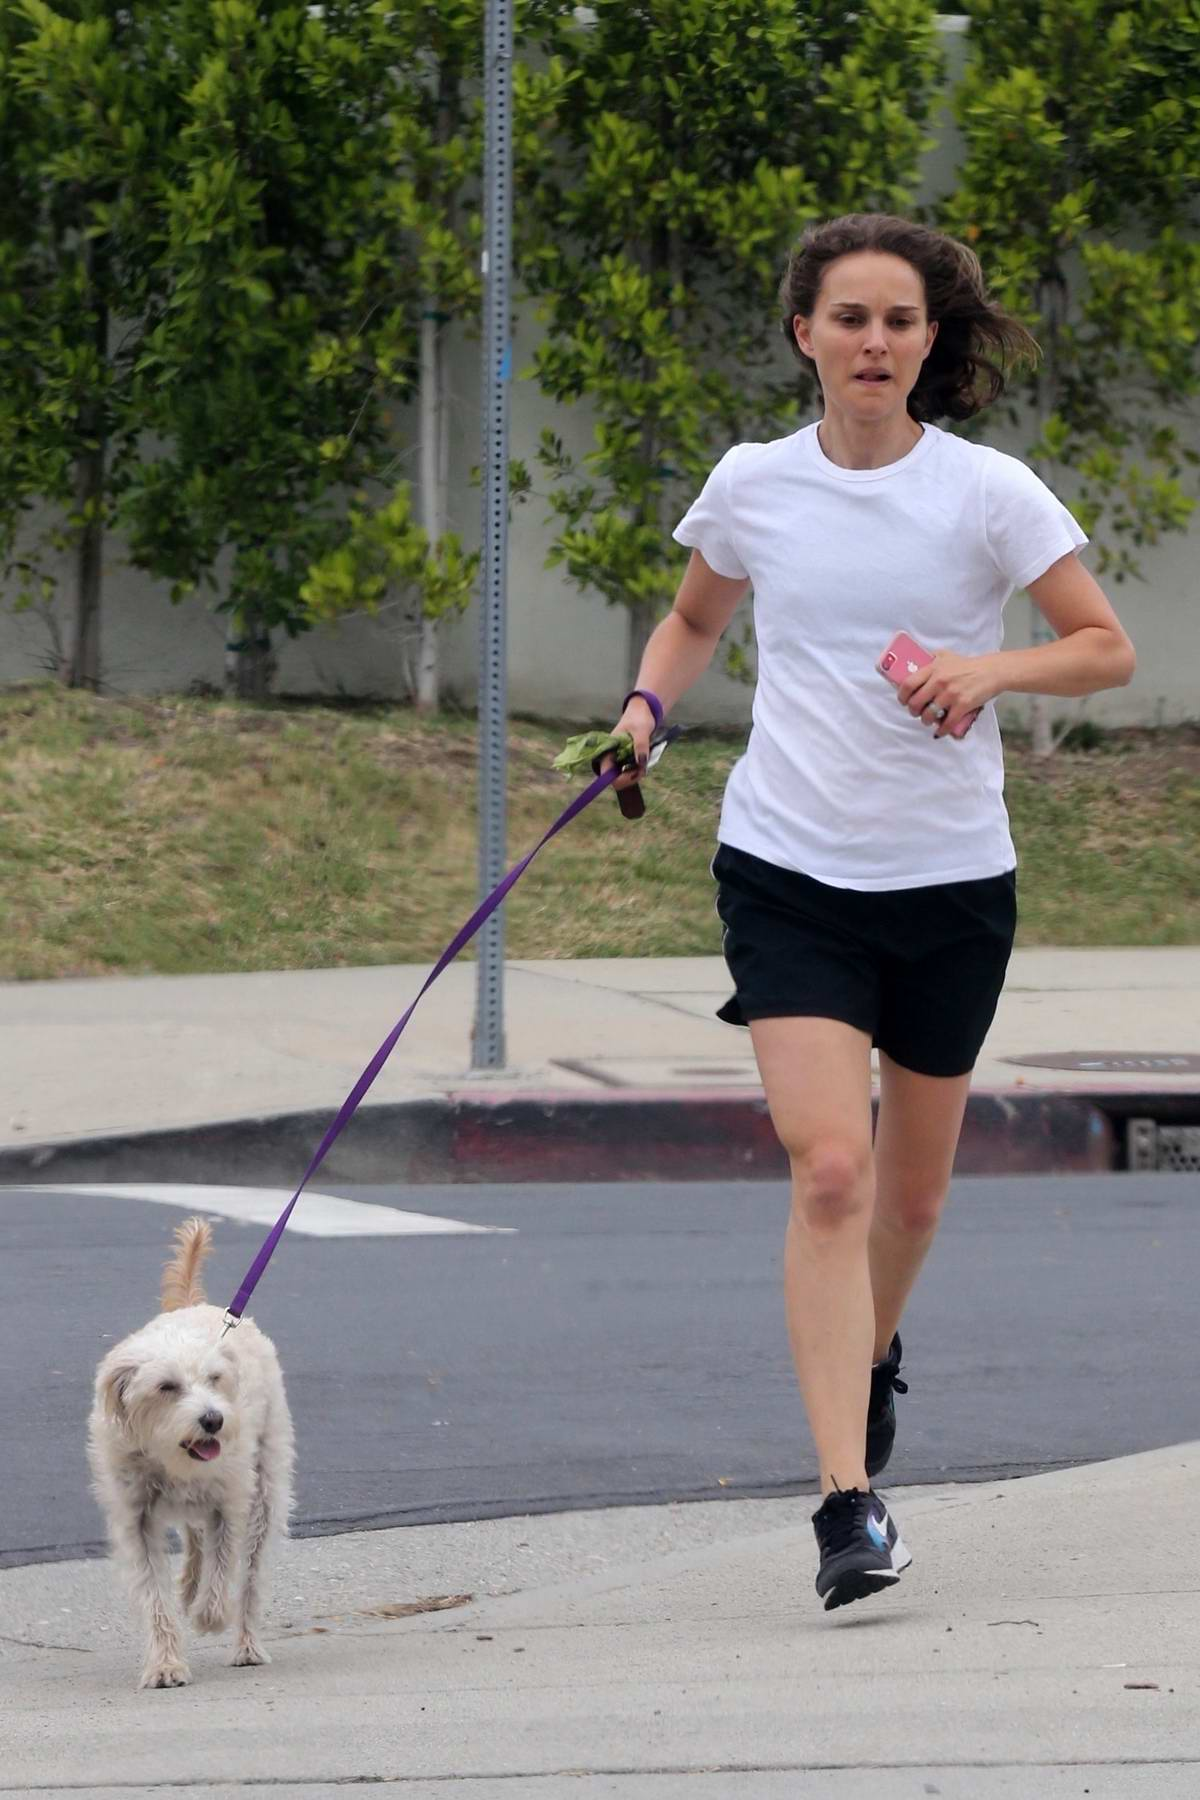 Natalie Portman takes her dog out for a run in Los Angeles